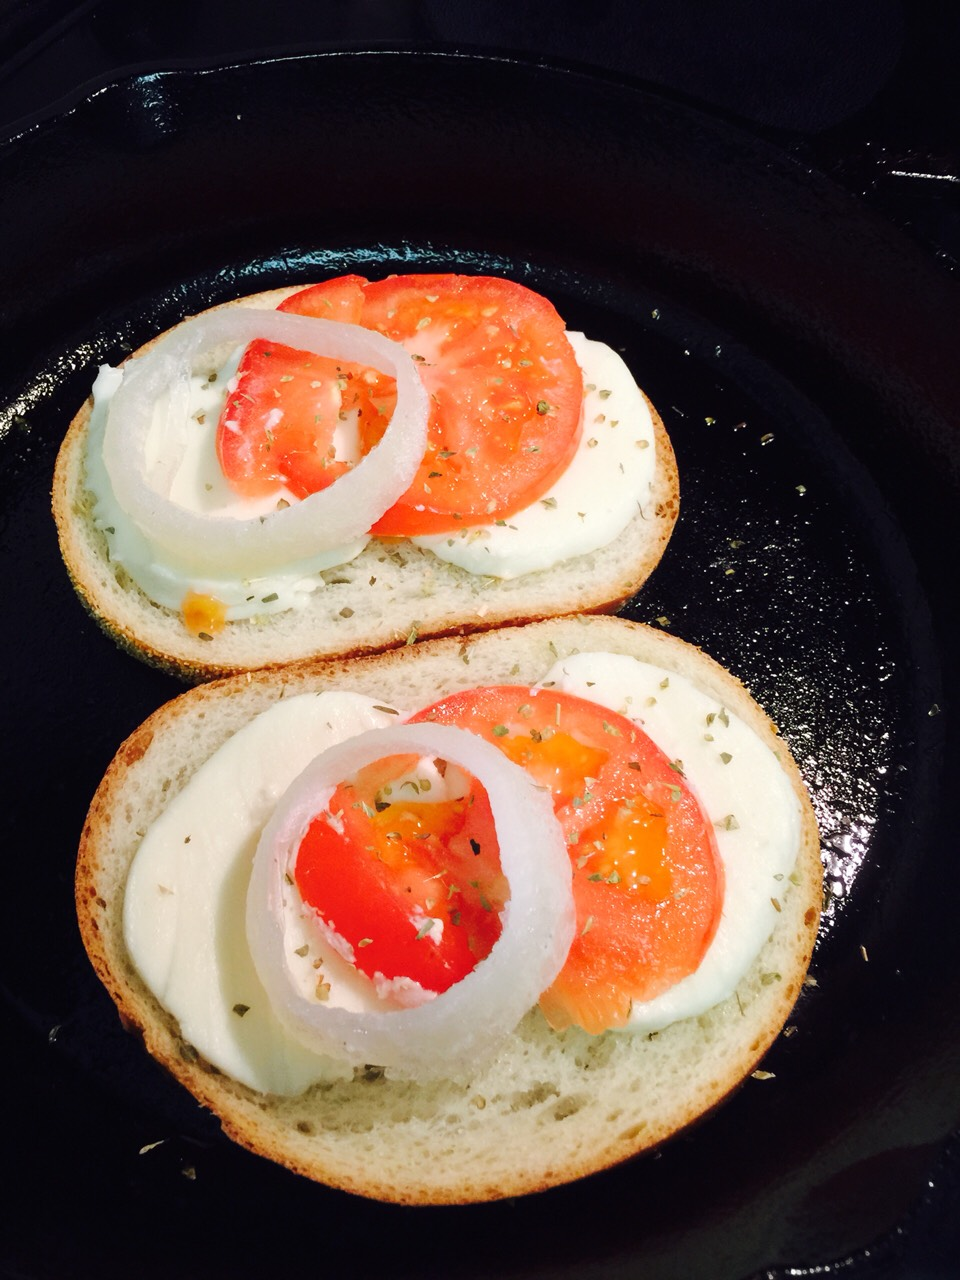 Sweet onion slices on top of tomatoes * add your choice of herbs - I chose oregano! 😋